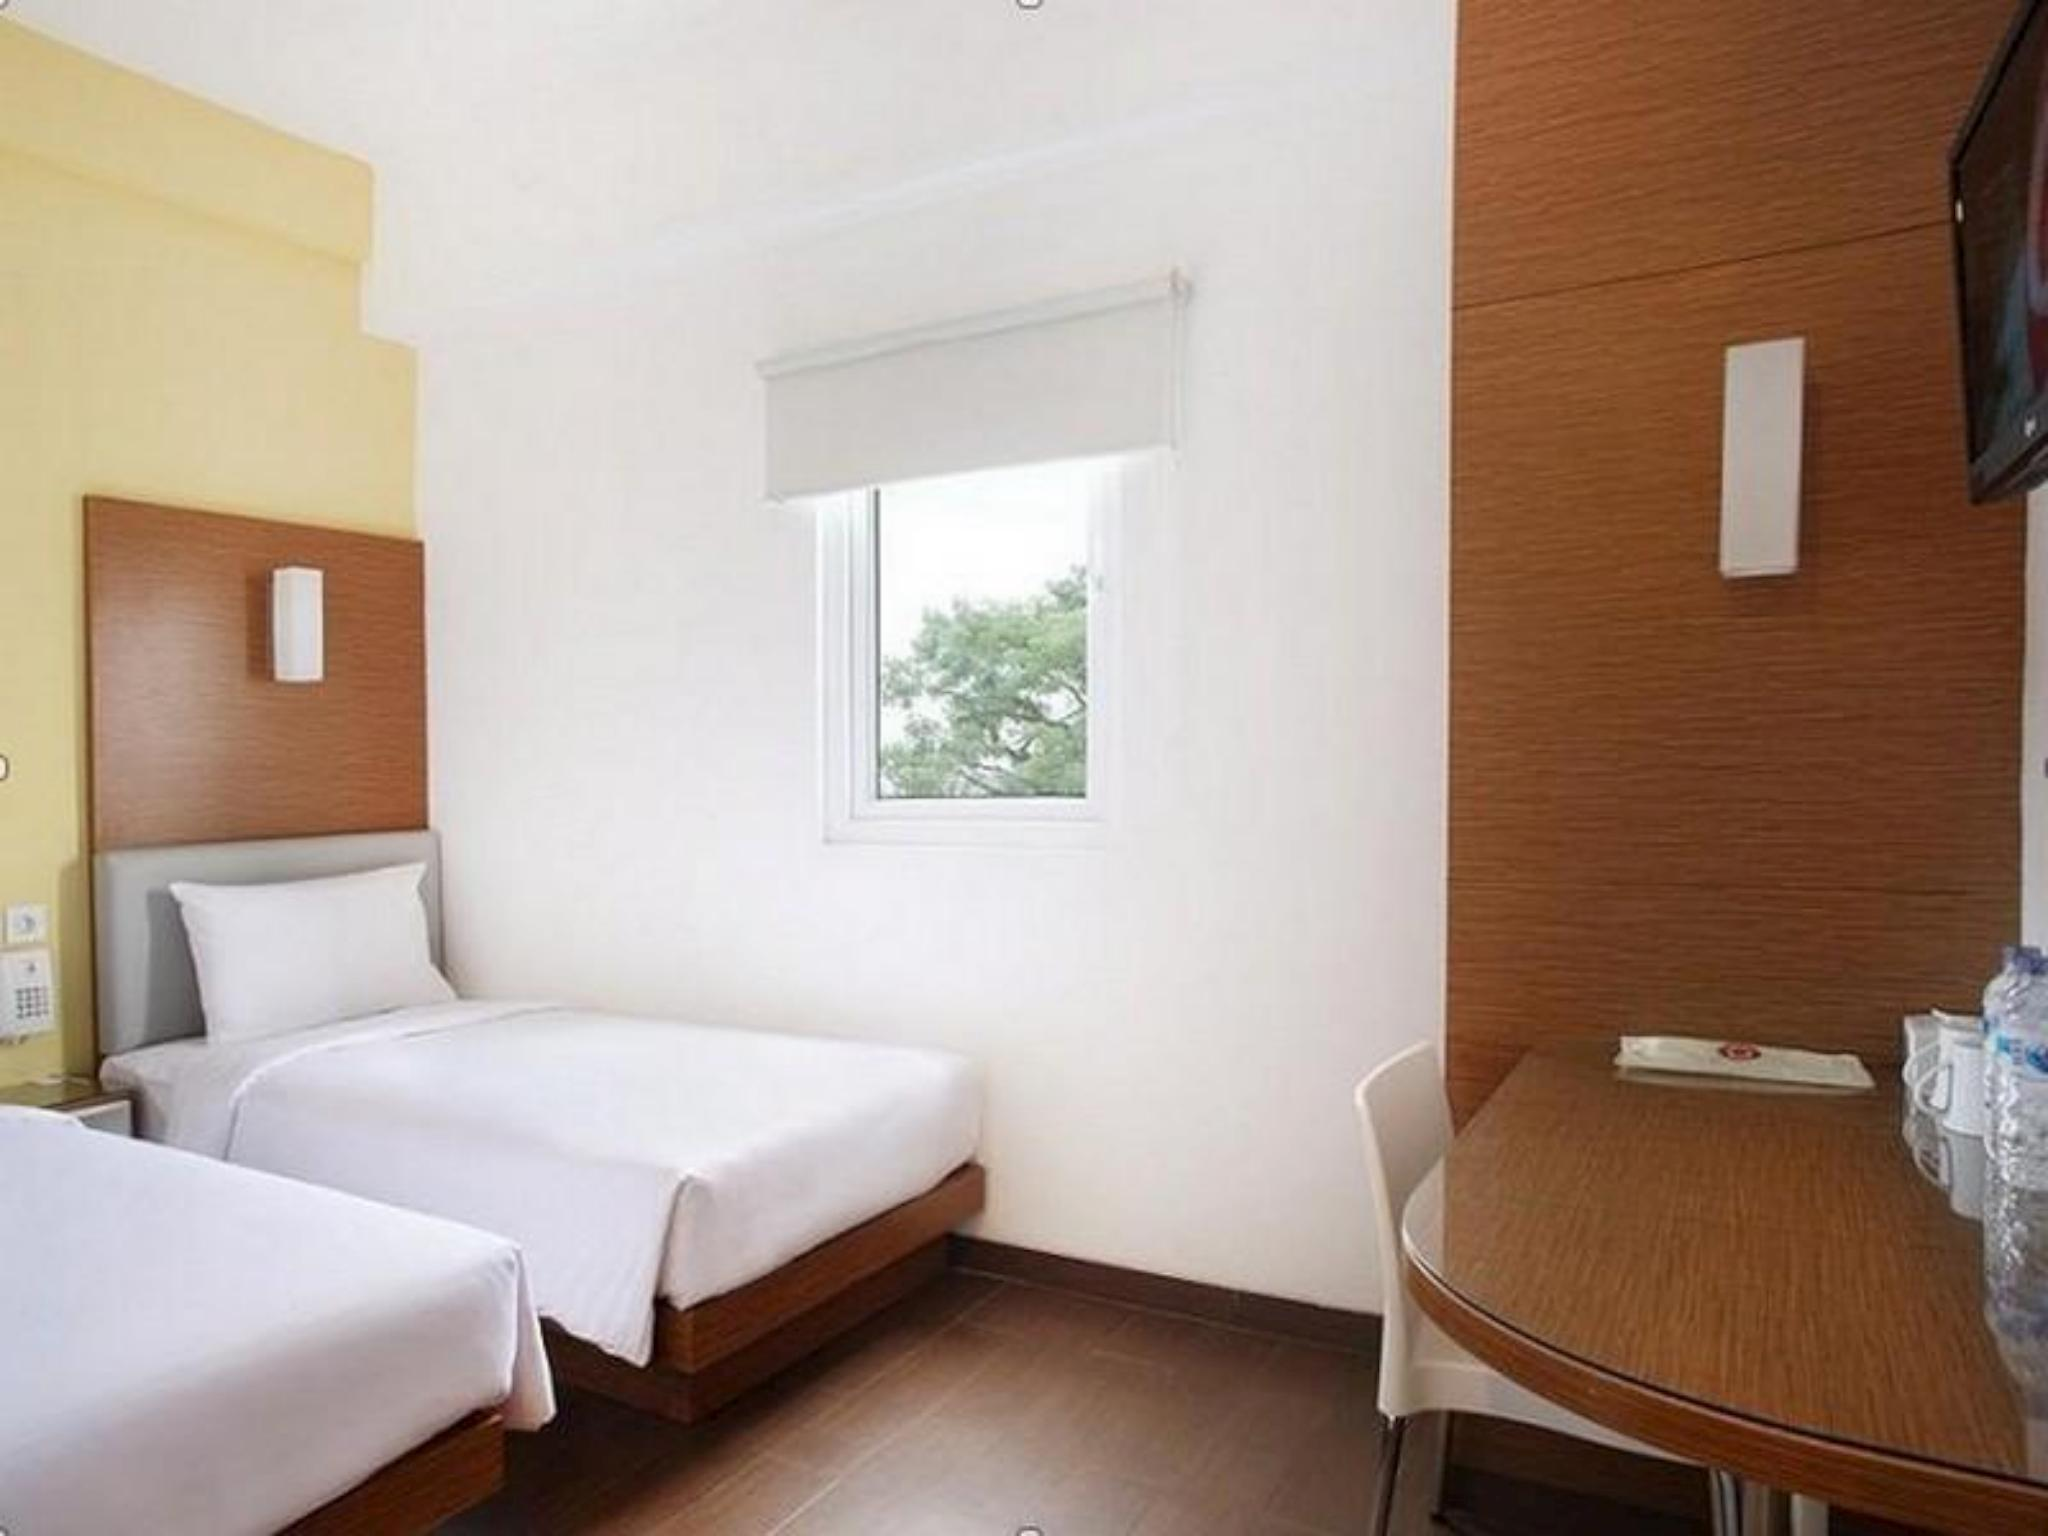 Amaris Hotel Malang In Indonesia Room Deals Photos Reviews Voucher The 1o1 Oj Smart Twin Bed